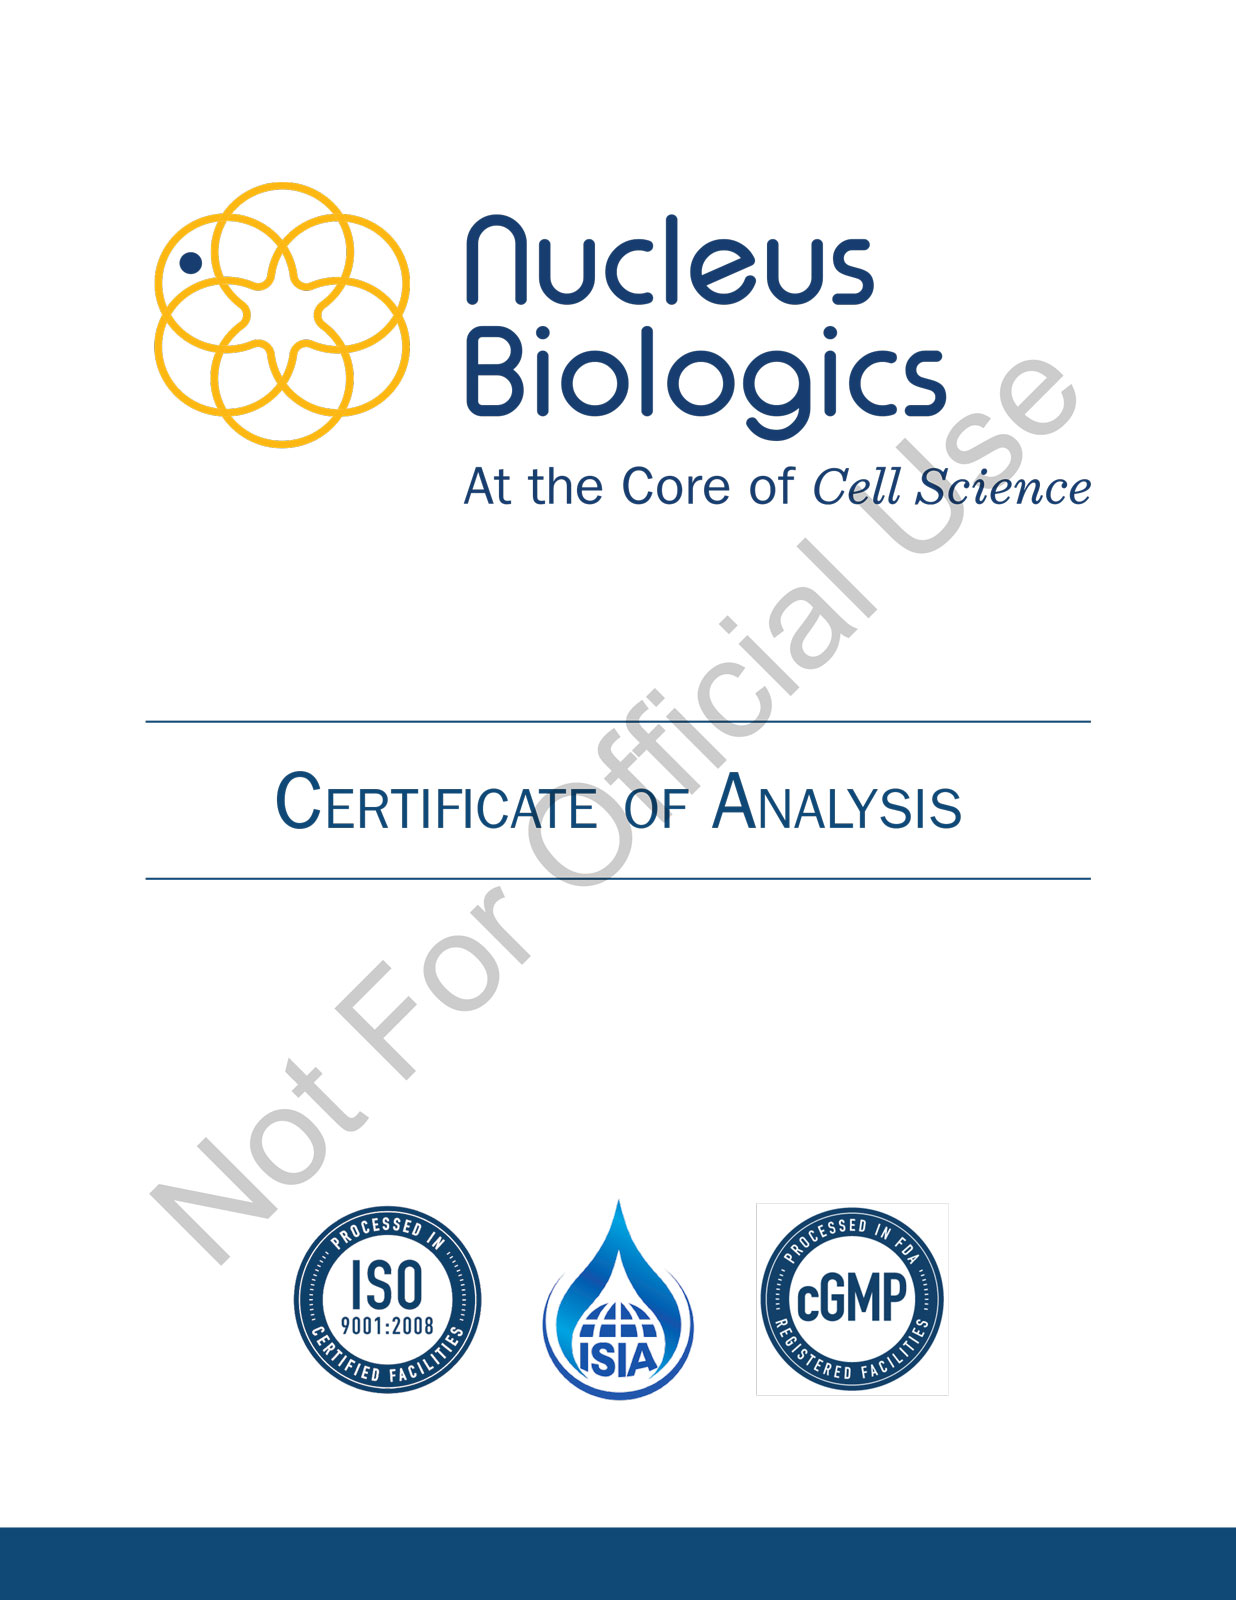 Sample Certificate of Analysis